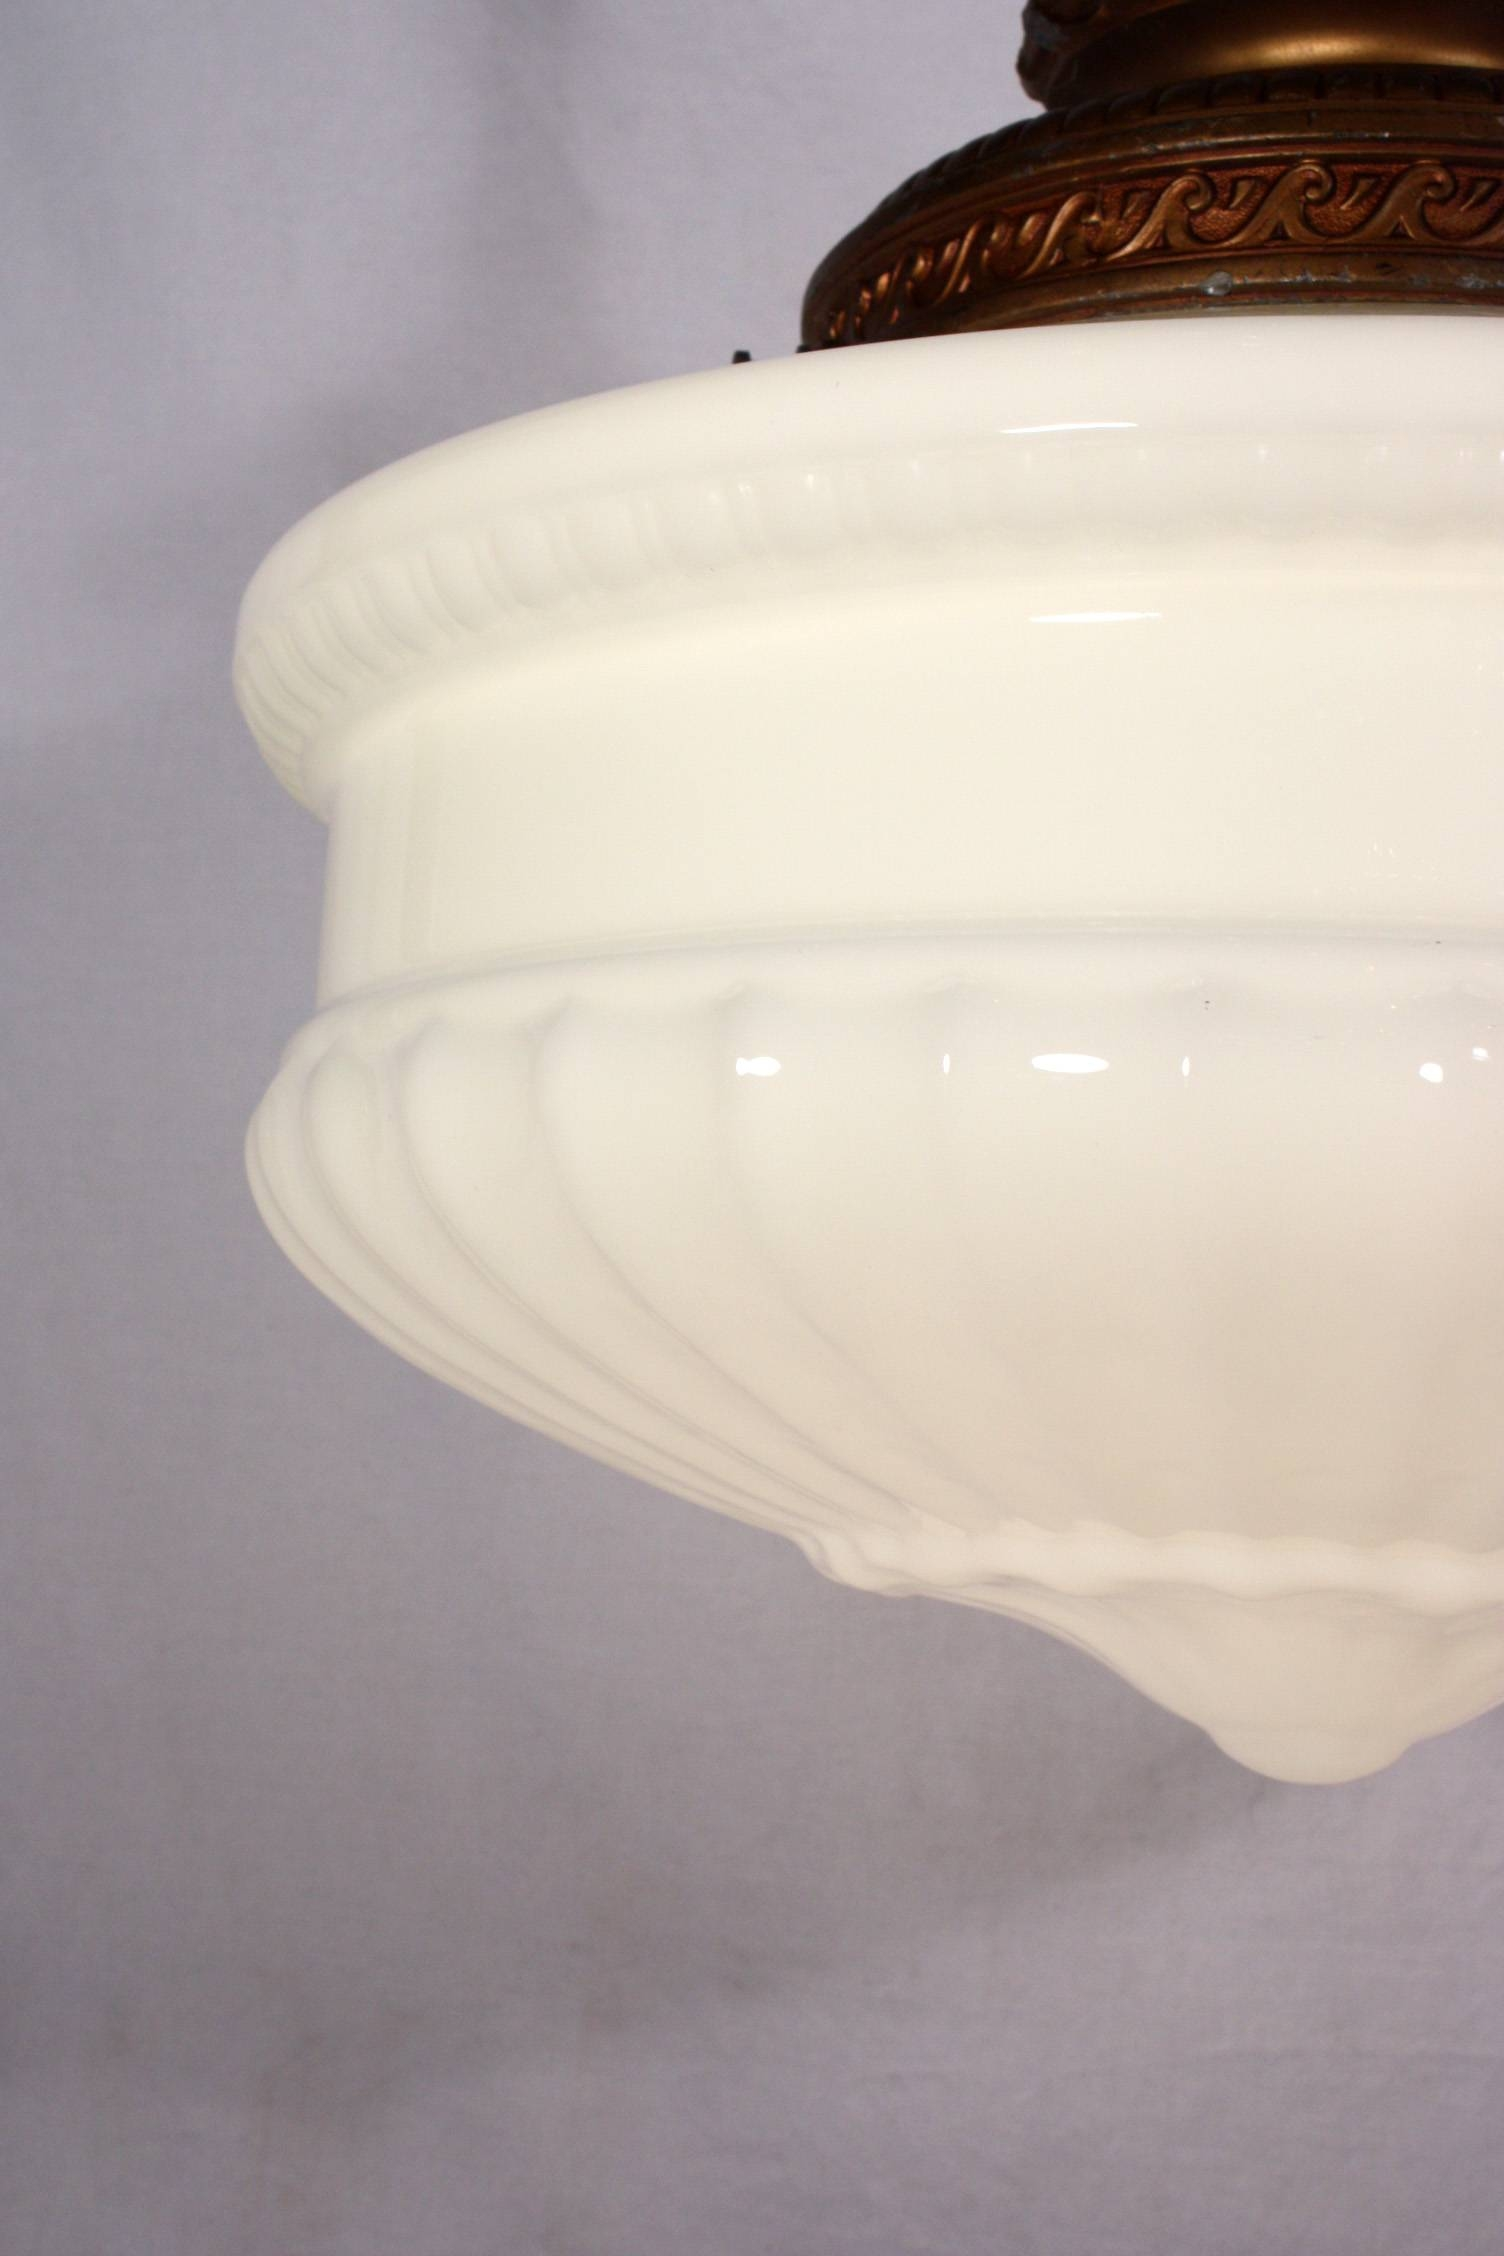 Large Antique Pendant Light Fixture With Original Milk Glass Shade pertaining to Milk Glass Lights Fixtures (Image 7 of 15)